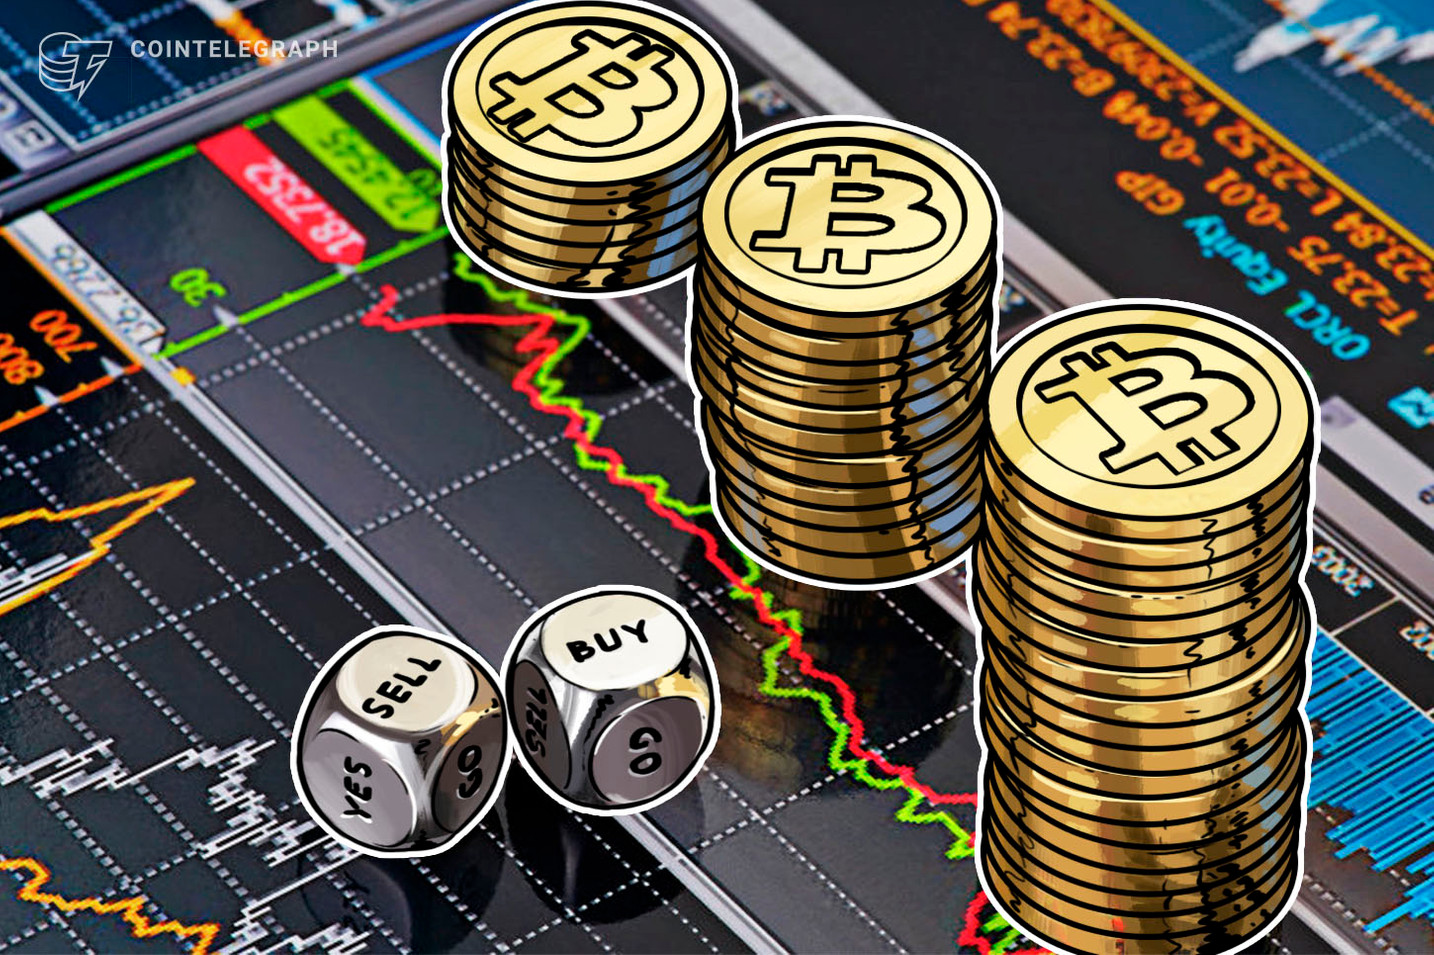 Bitcoin Fundamentals 'Still Intact' Despite Price Lows, Says Blockchain Intelligence Group